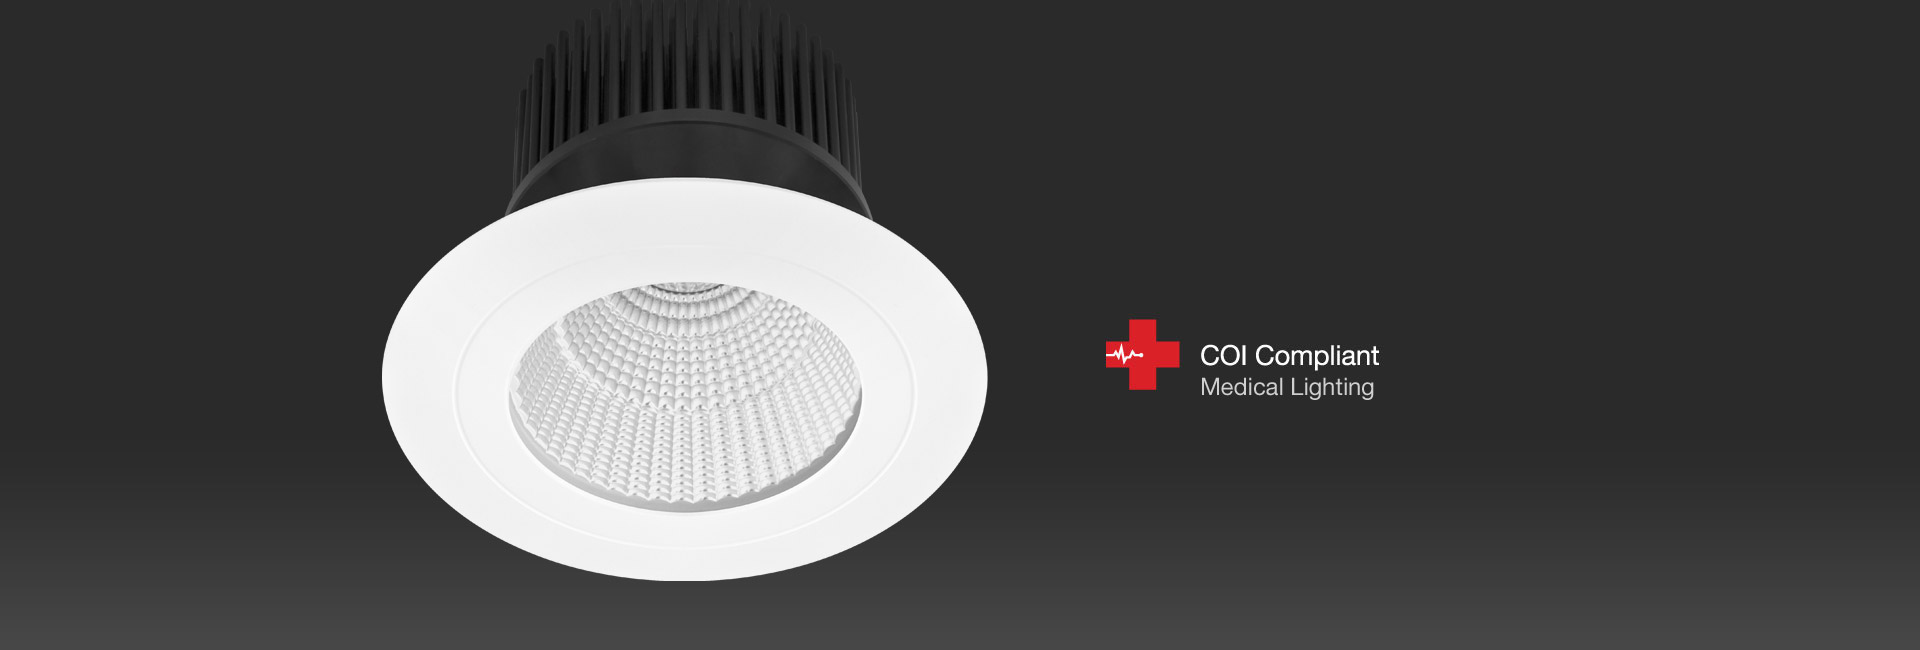 COI Compliant Medical Lighting